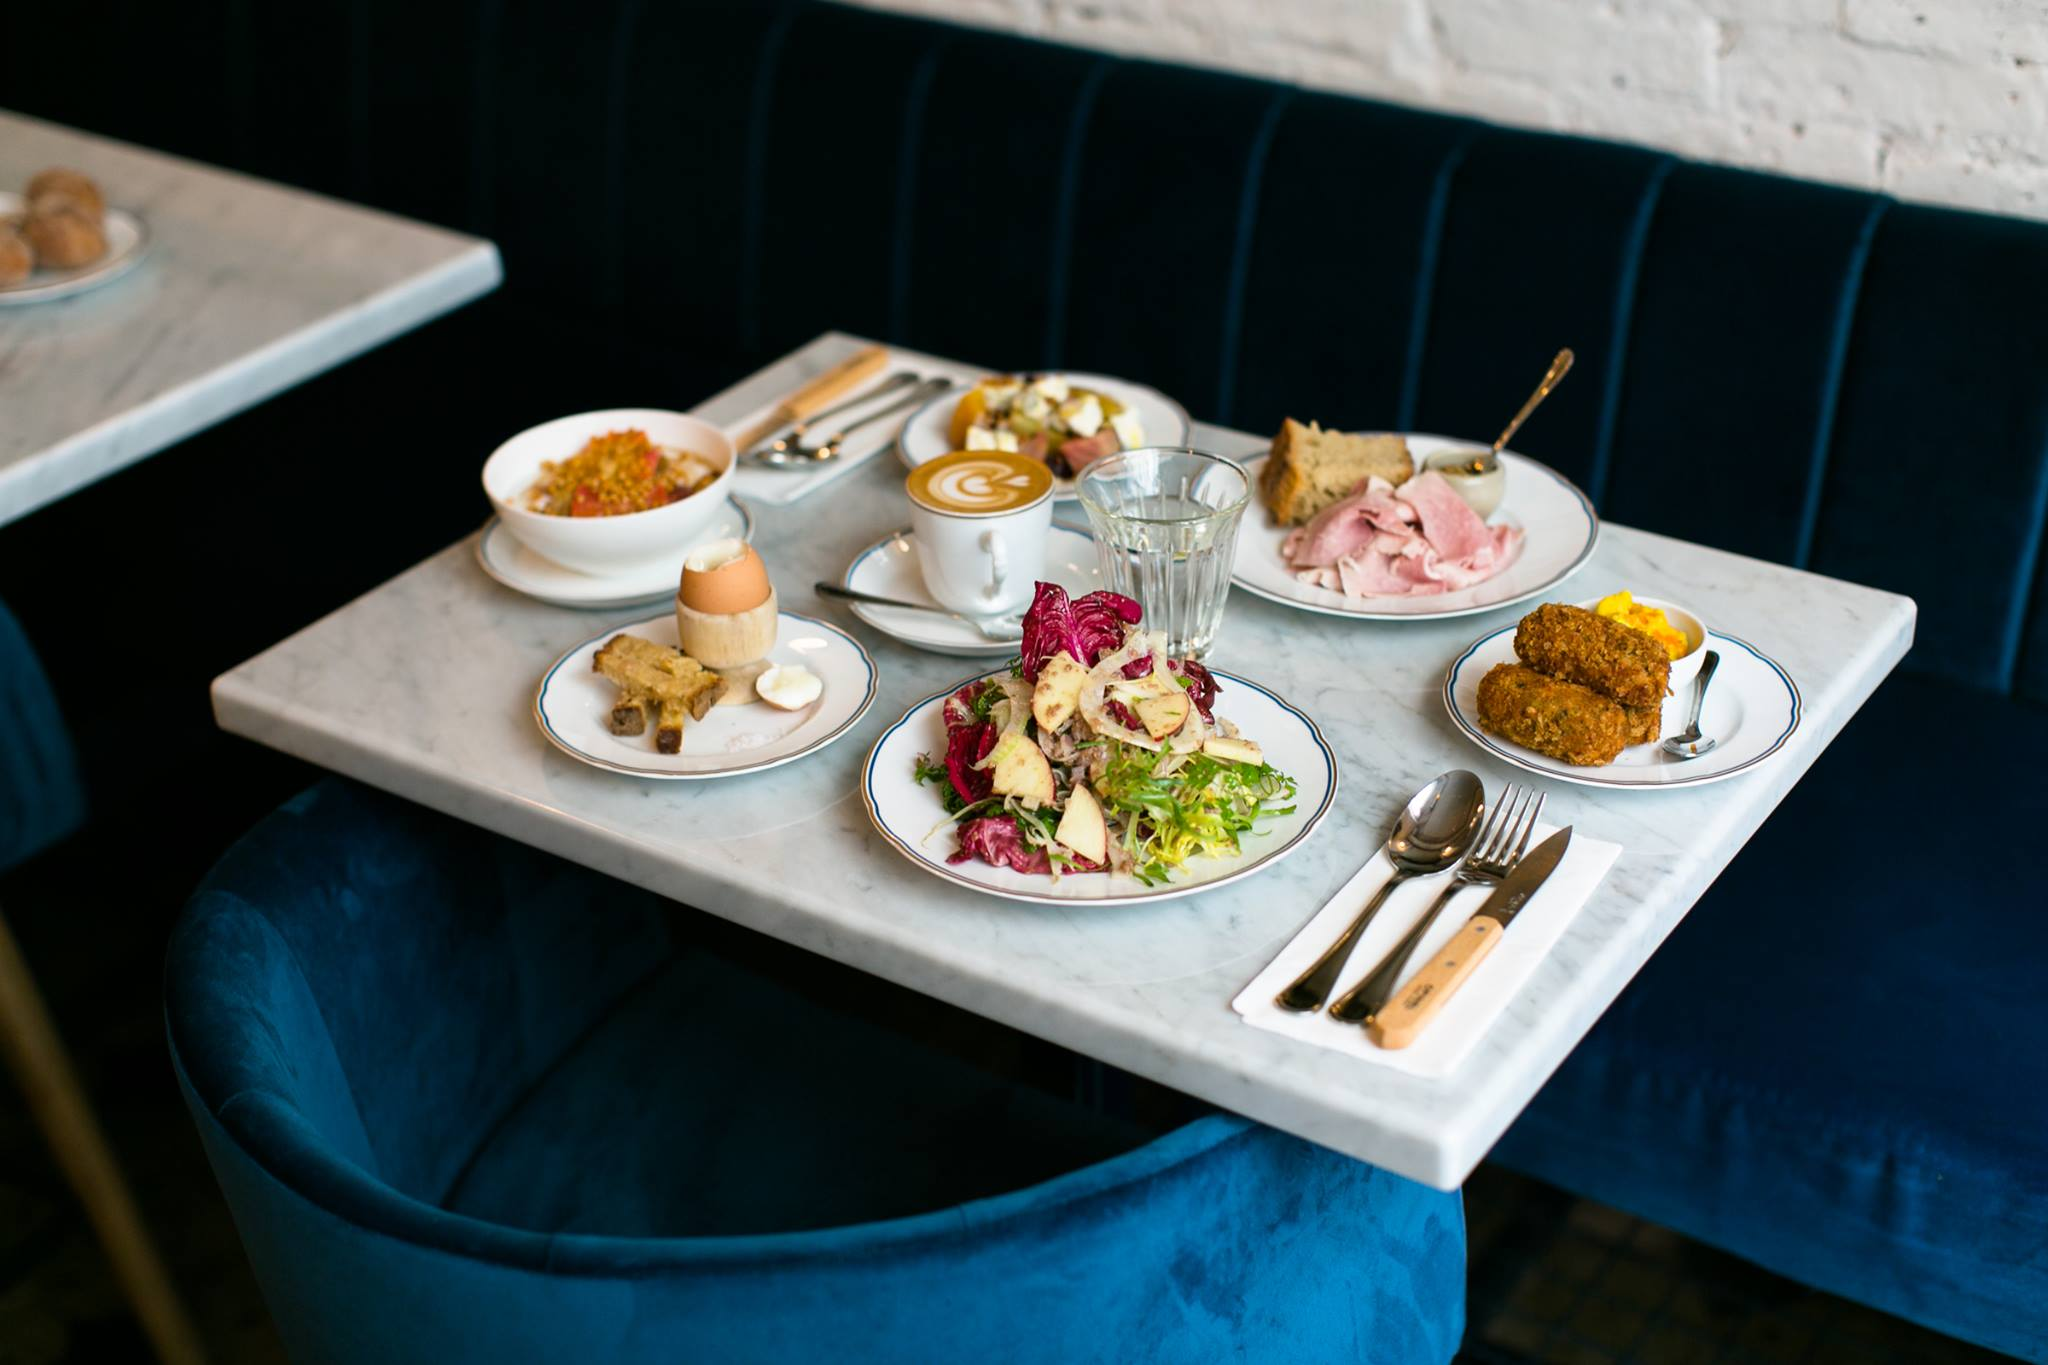 Food, including a boiled egg, cup of coffee, ham and a salad sits on a table at Holybelly 19.